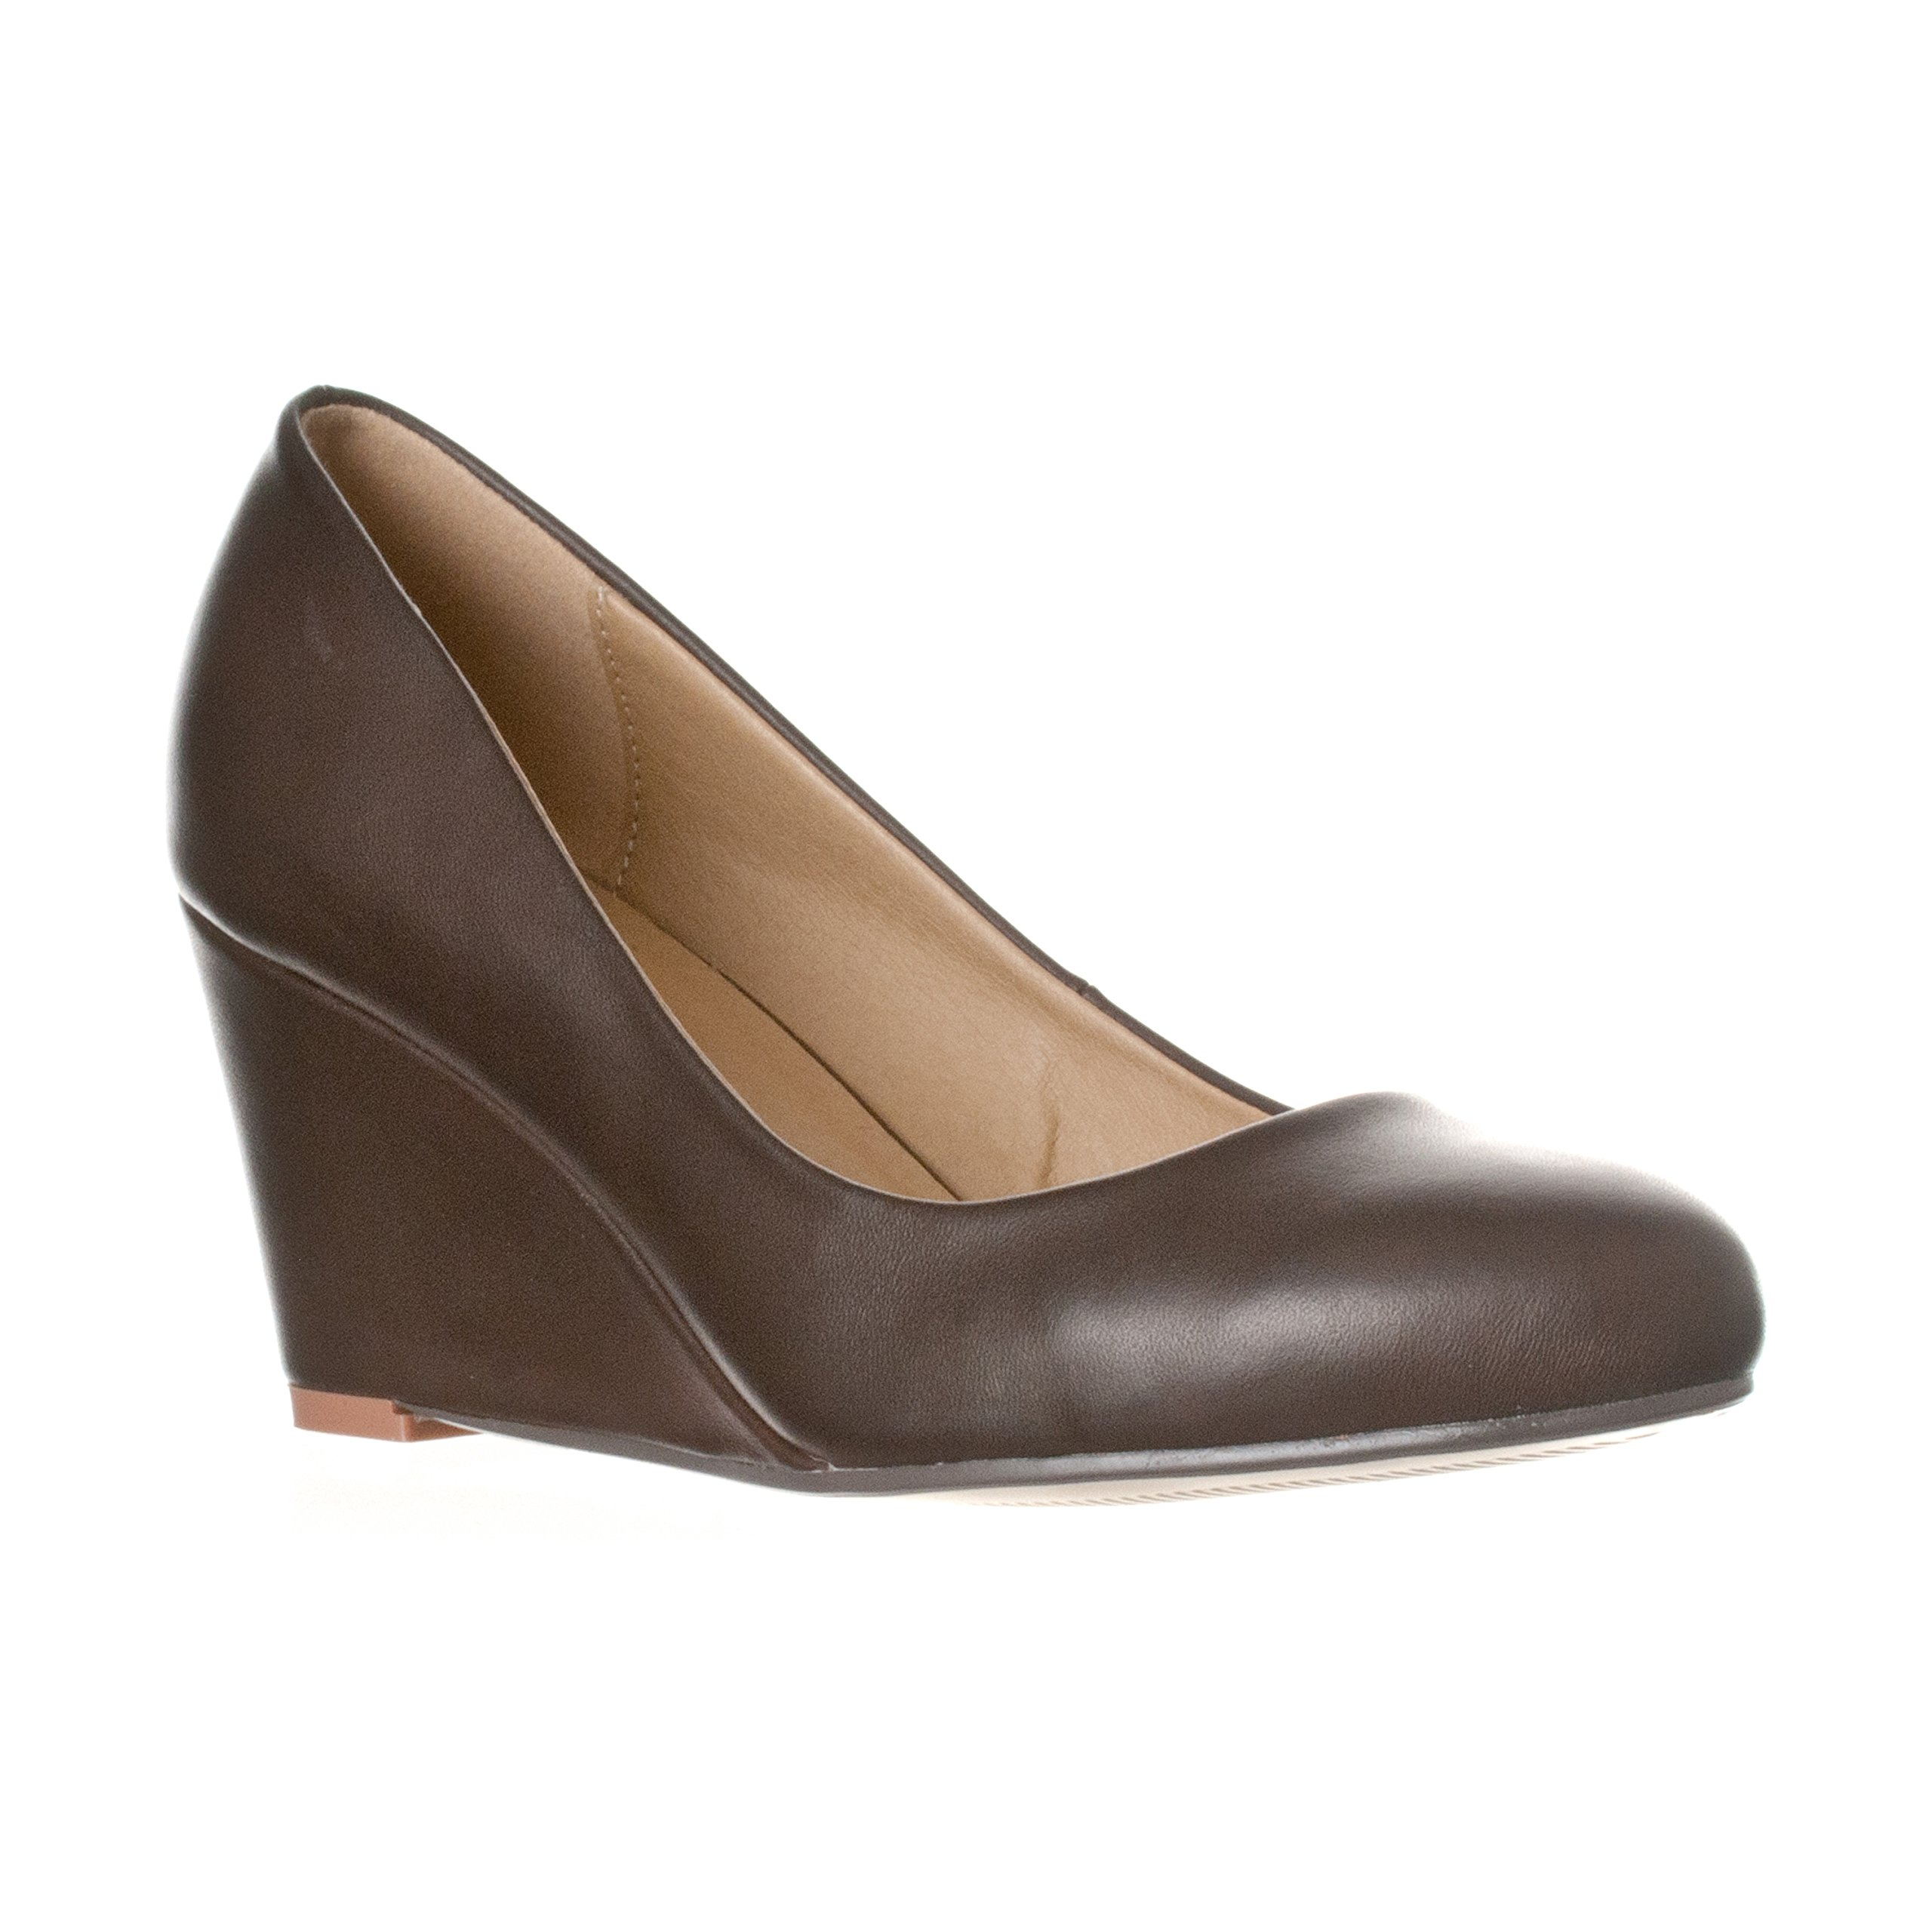 Riverberry Women's Leah Mid Heel Round Toe Wedge Pumps, Coffee PU, 9